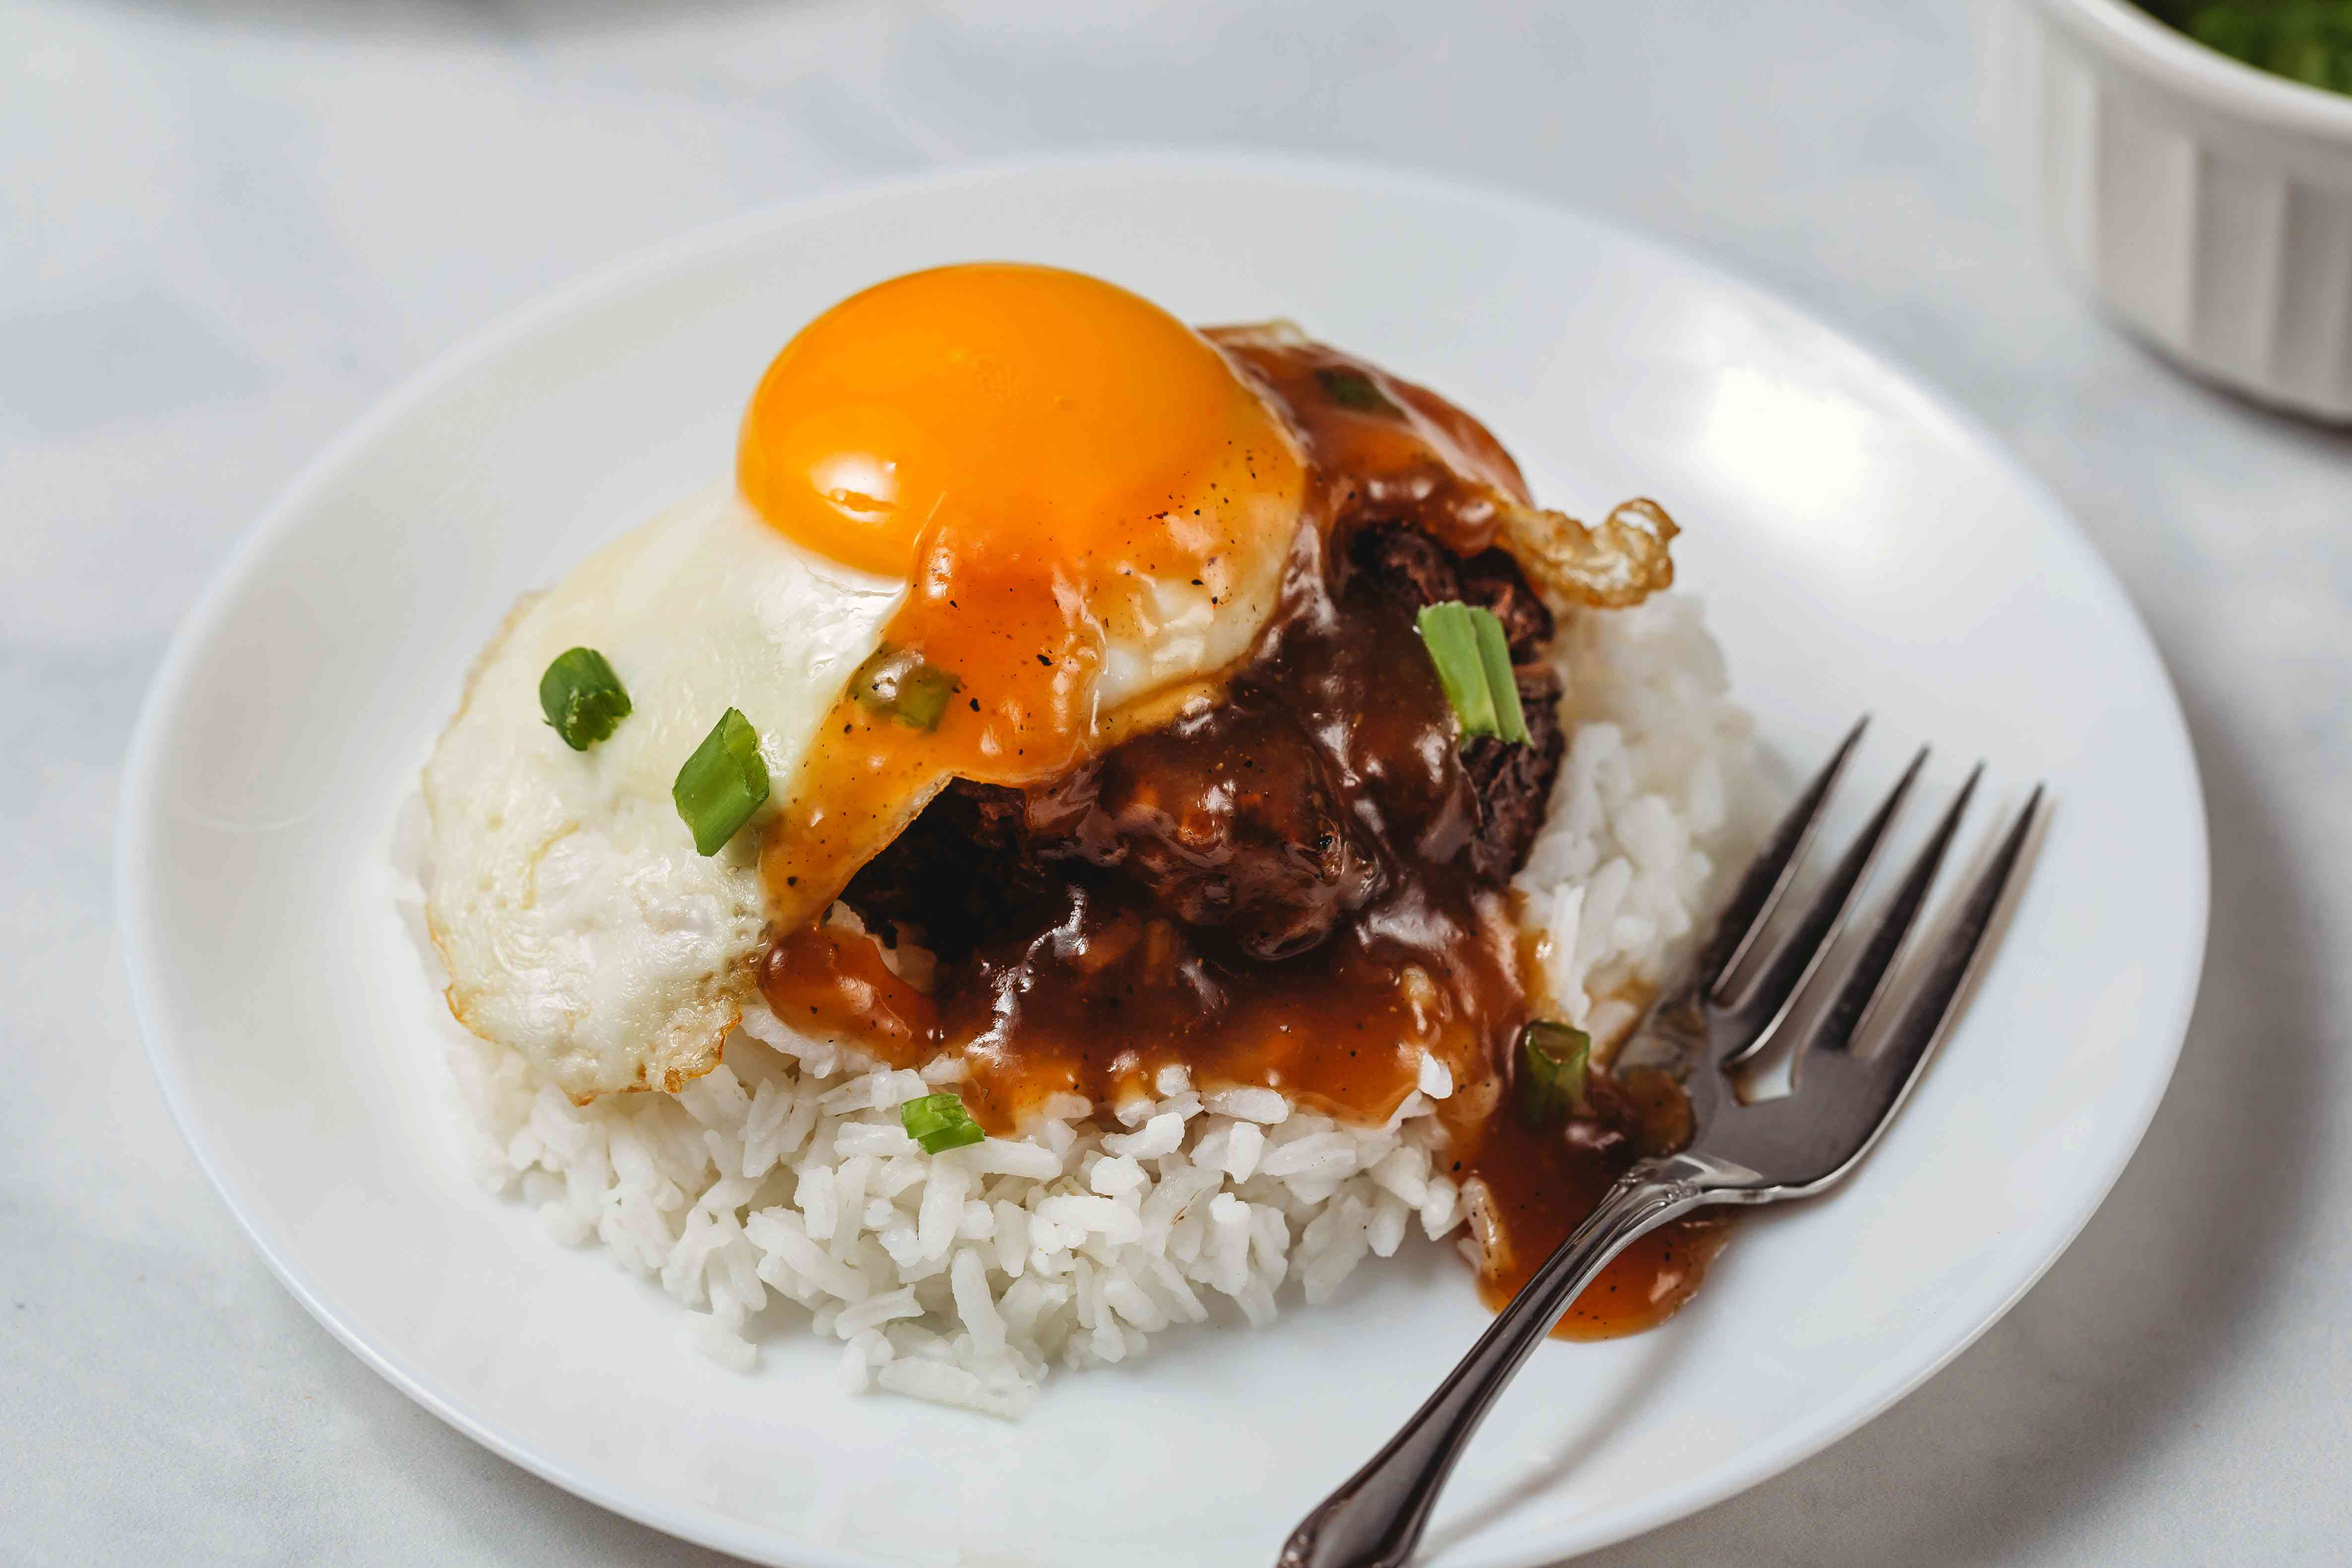 Hawaiian Loco Moco Barbecue served on rice with an egg and gravy